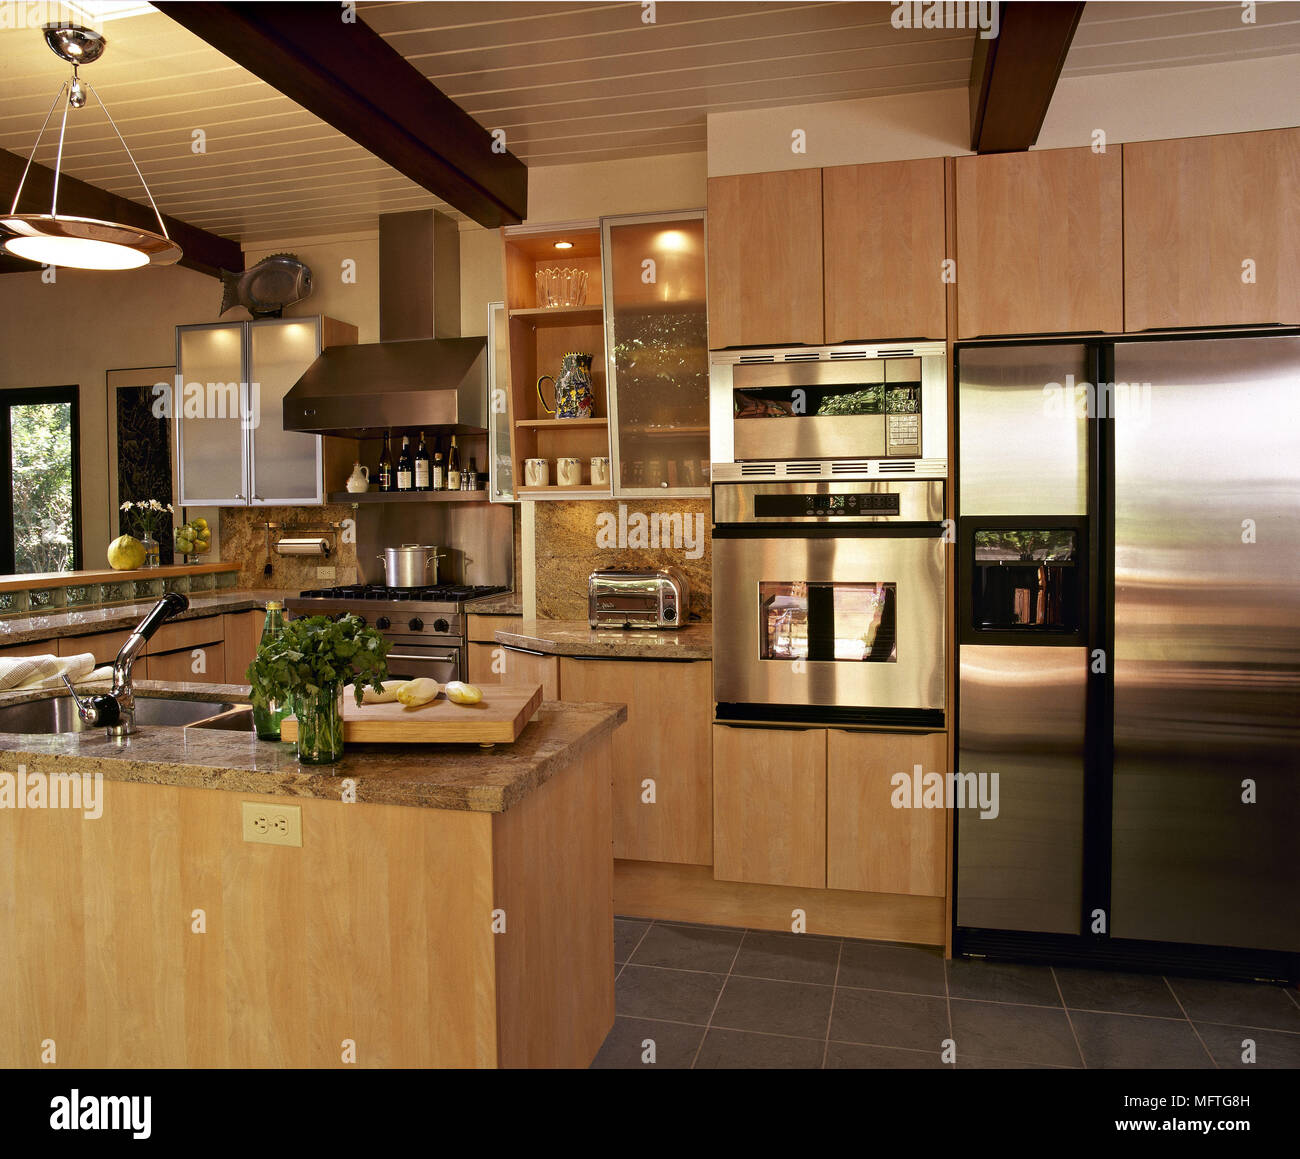 Stainless Steel Appliances Stockfotos & Stainless Steel Appliances ...